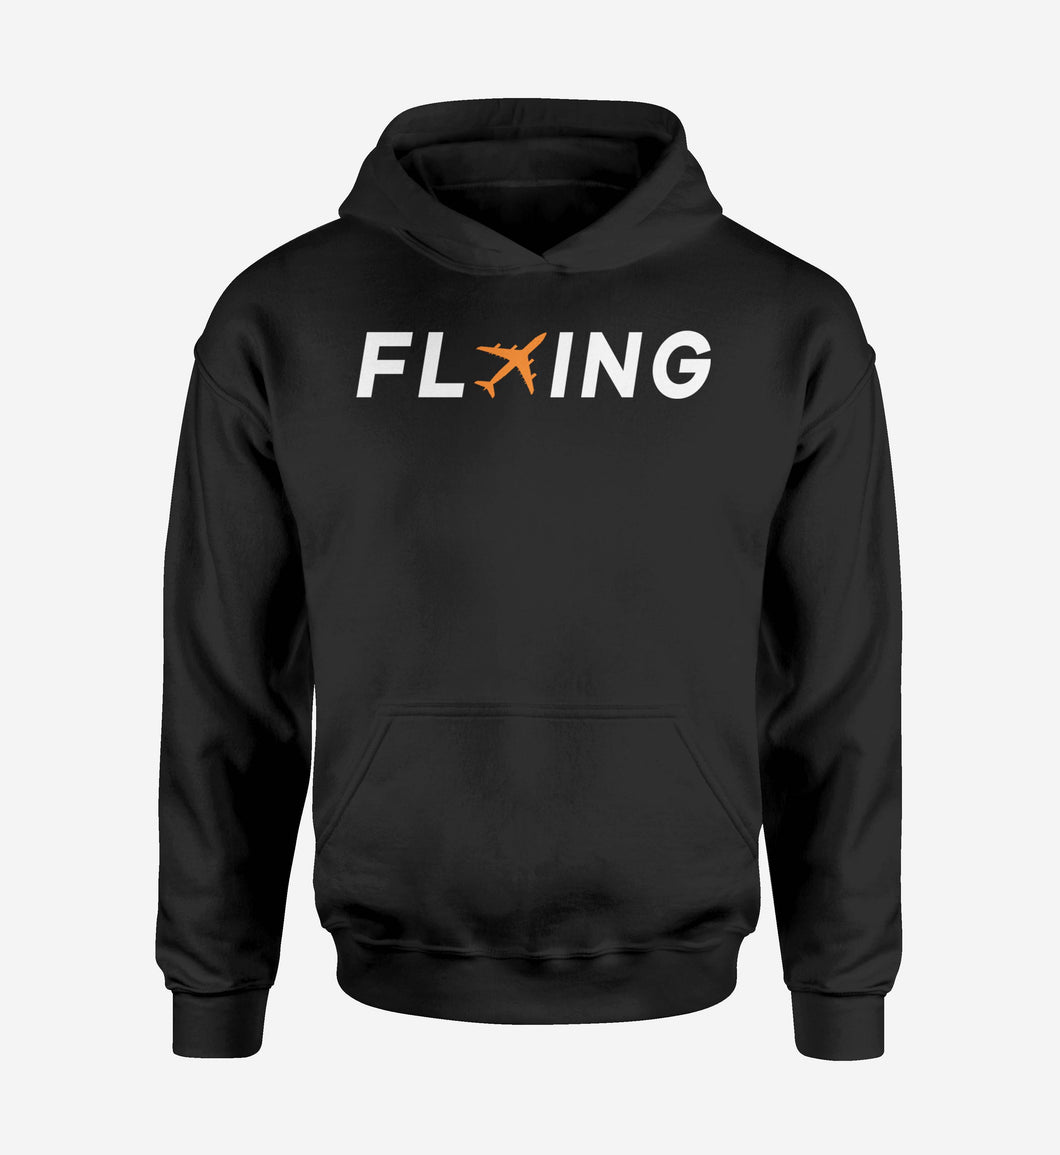 Flying Designed Hoodies